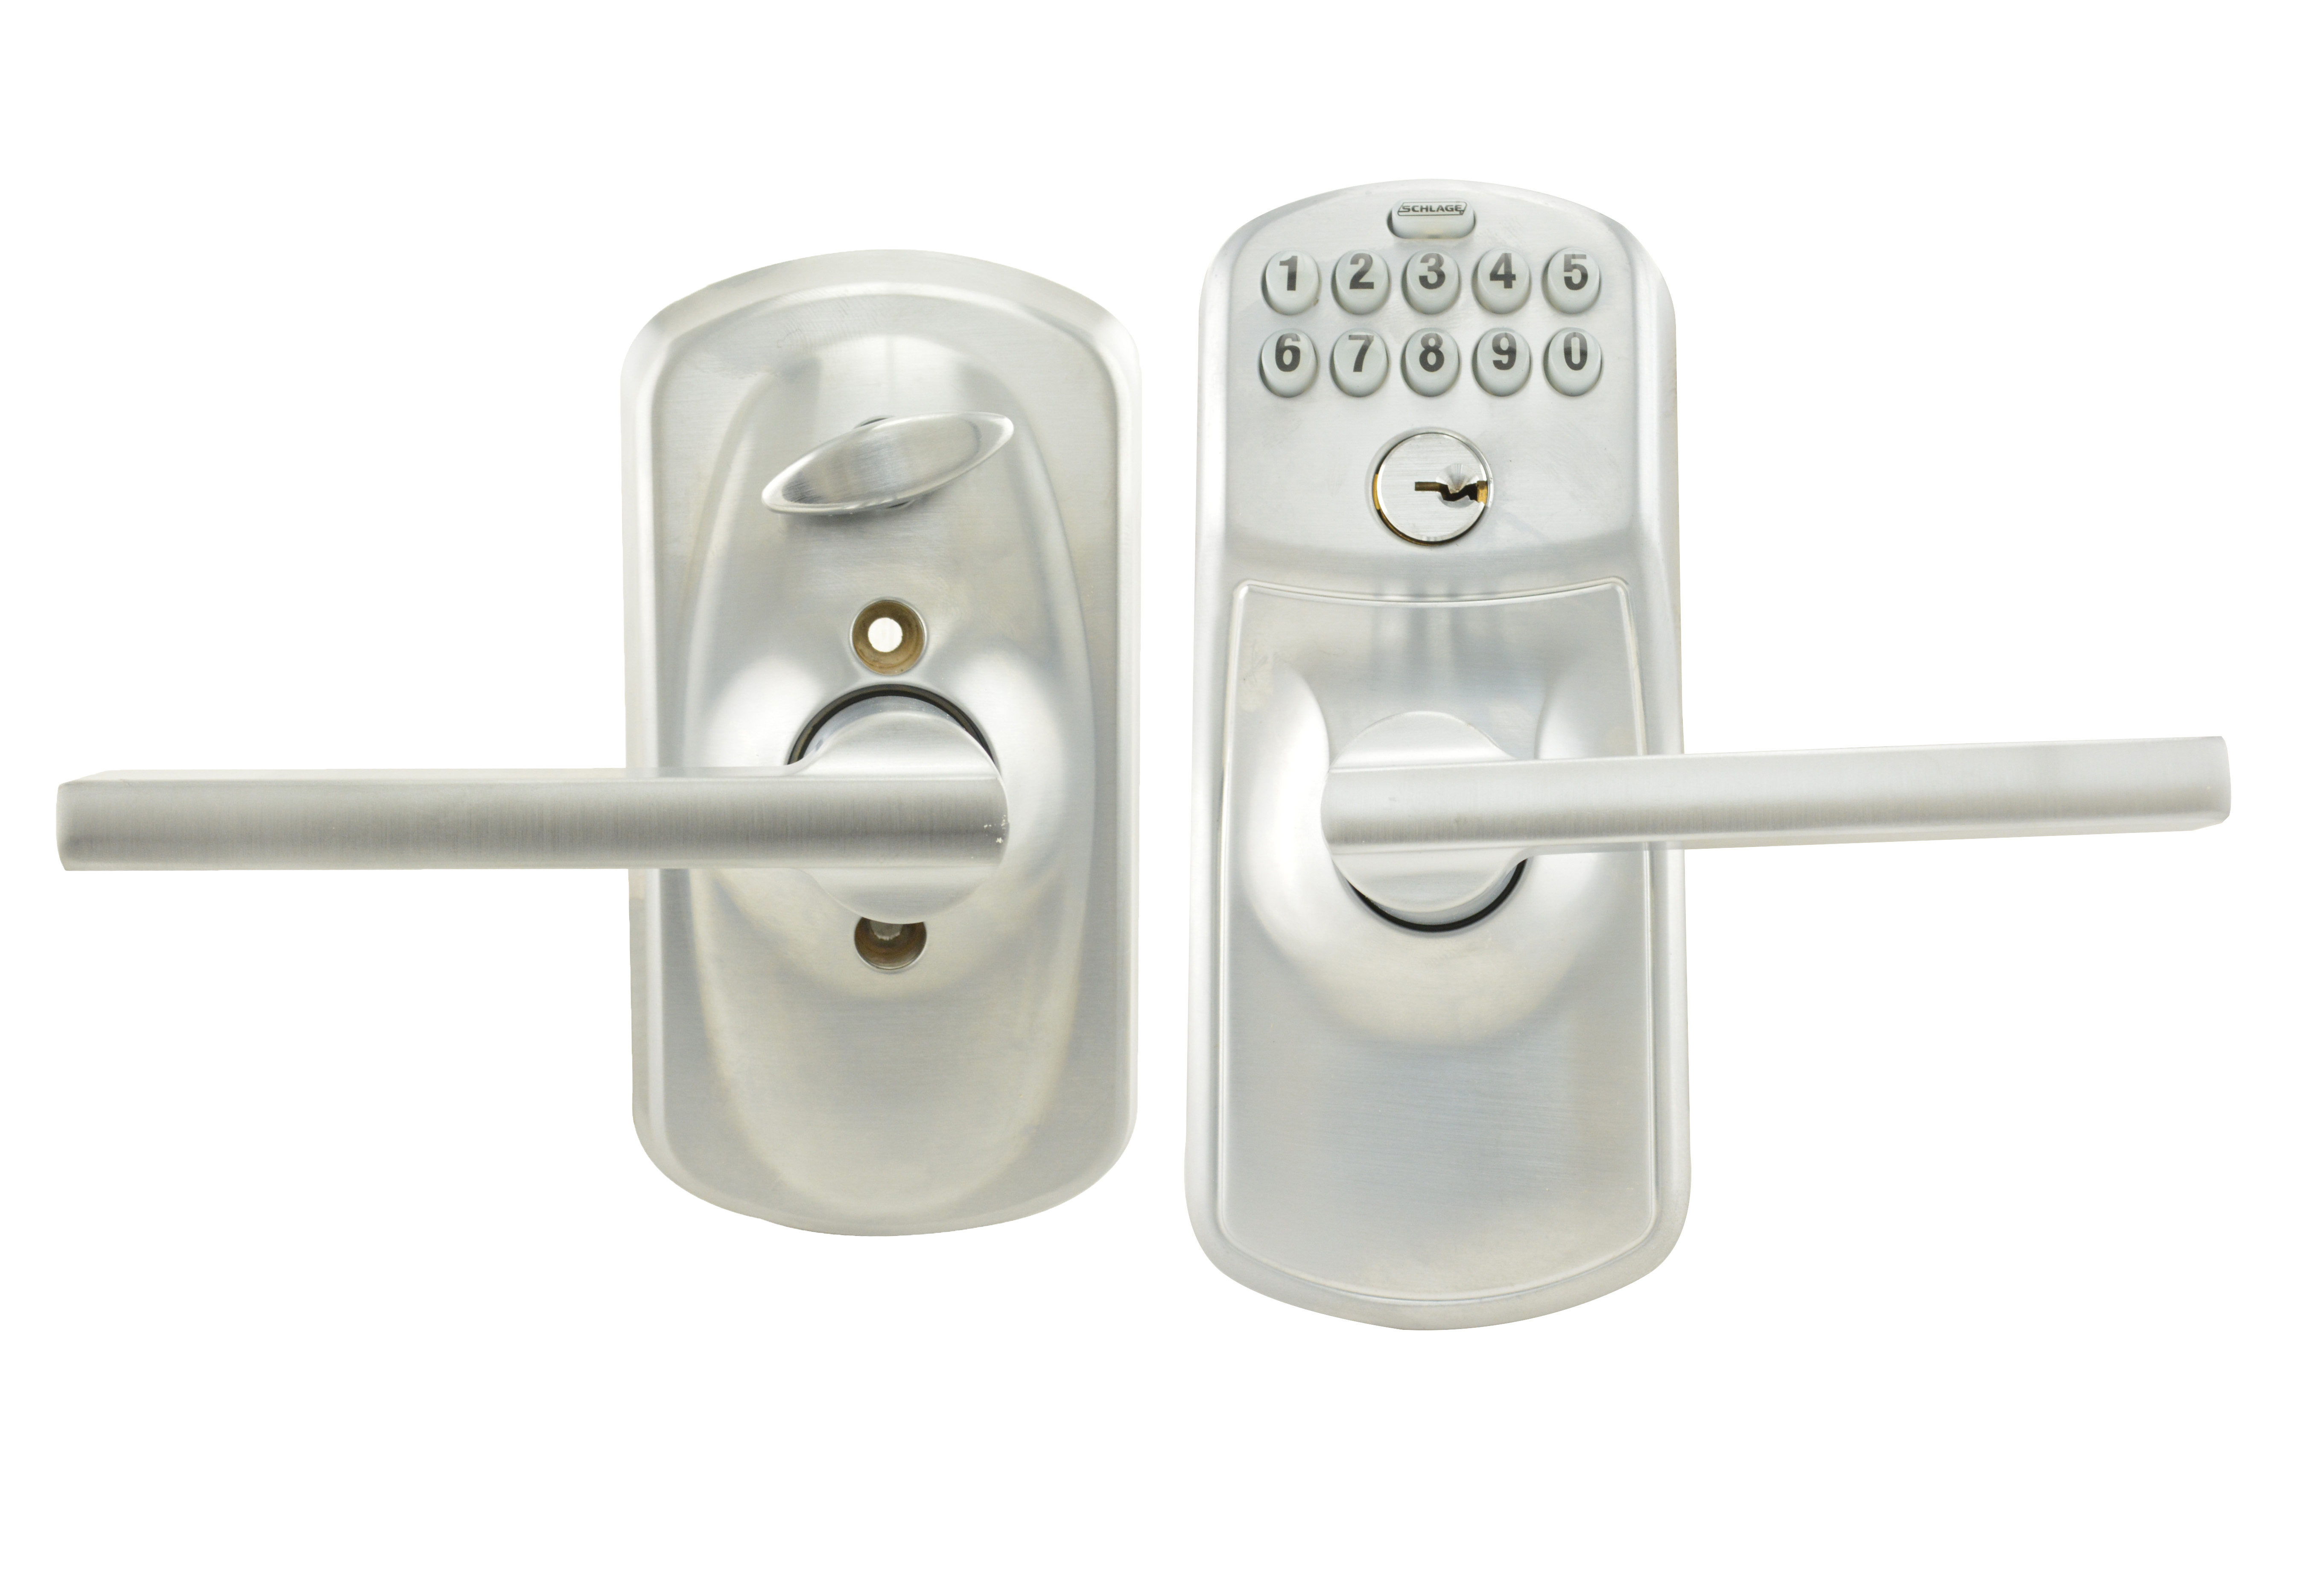 Schlage Fe595 Ply Lat Plymouth Keypad Flex Lock Entry